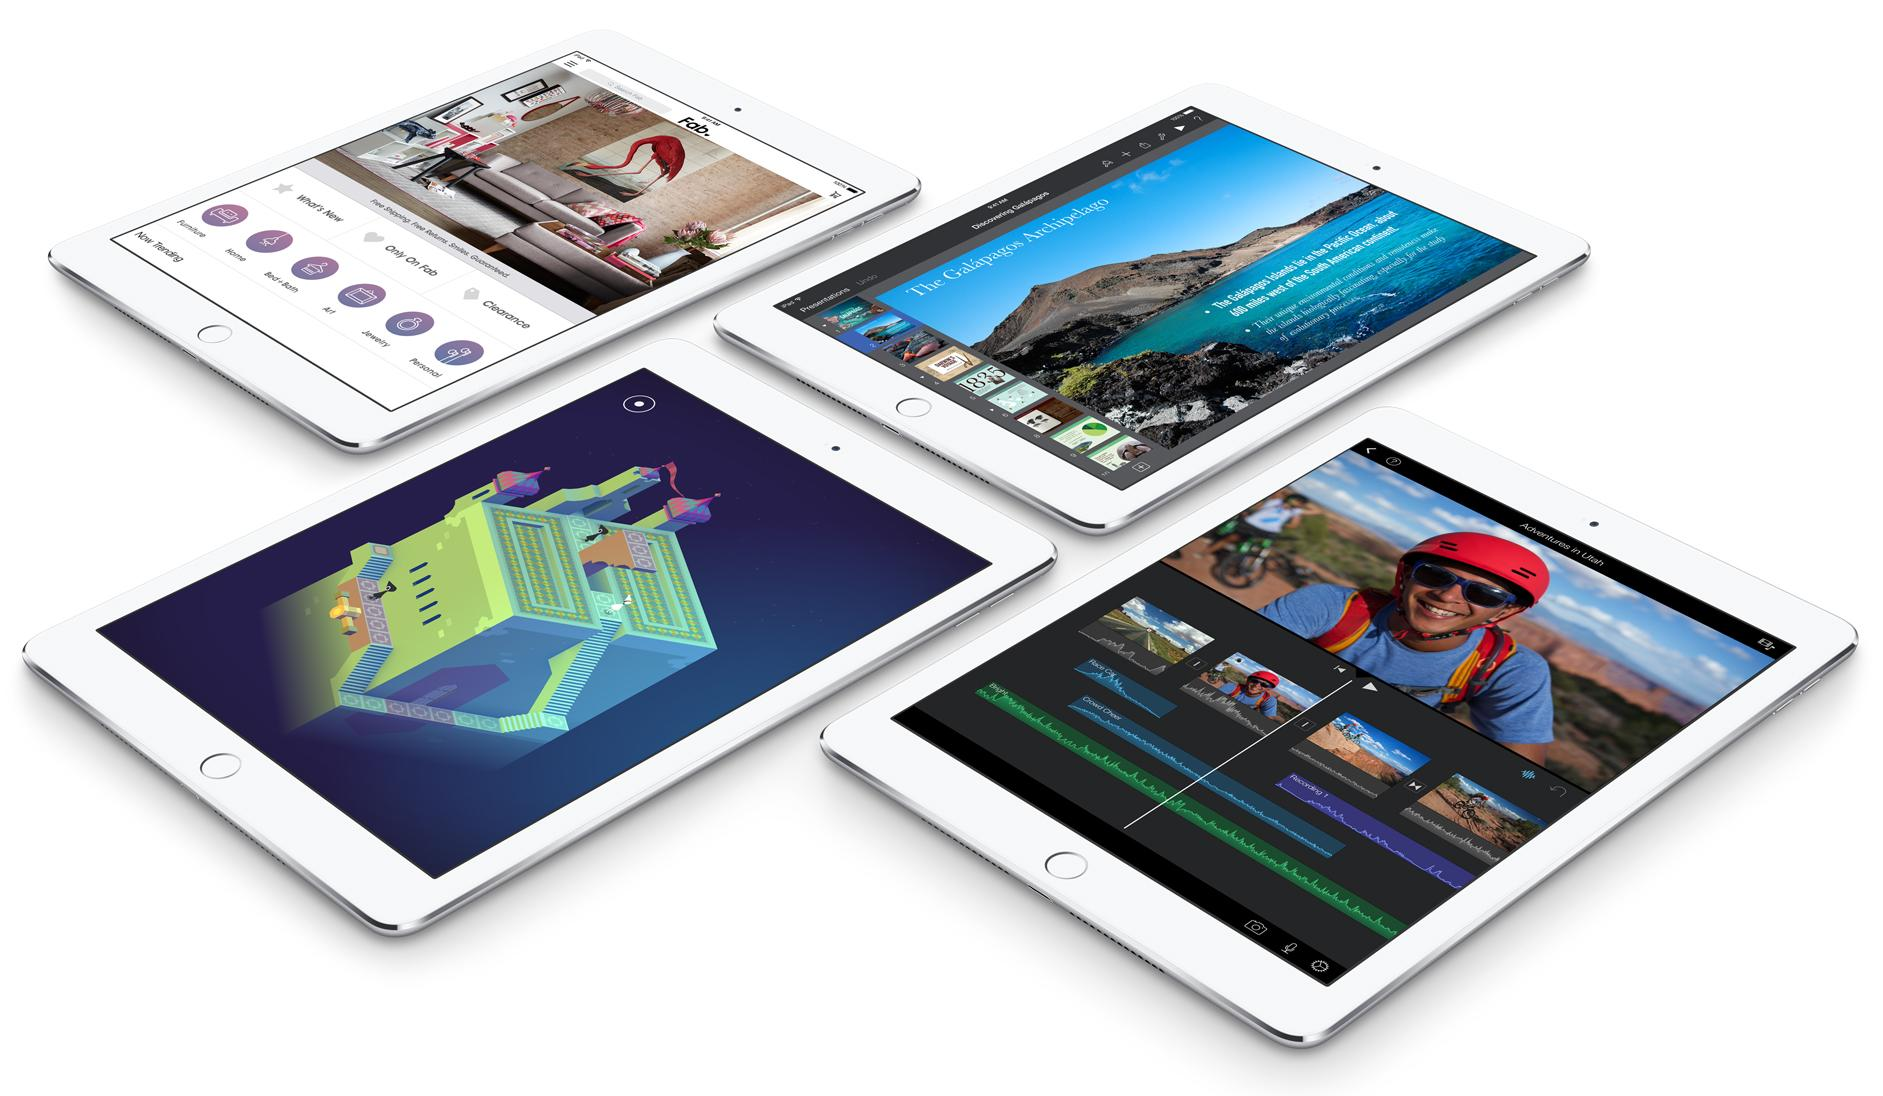 New leak reveals how gigantic the 12-inch iPad may be compared to the iPad Air 2